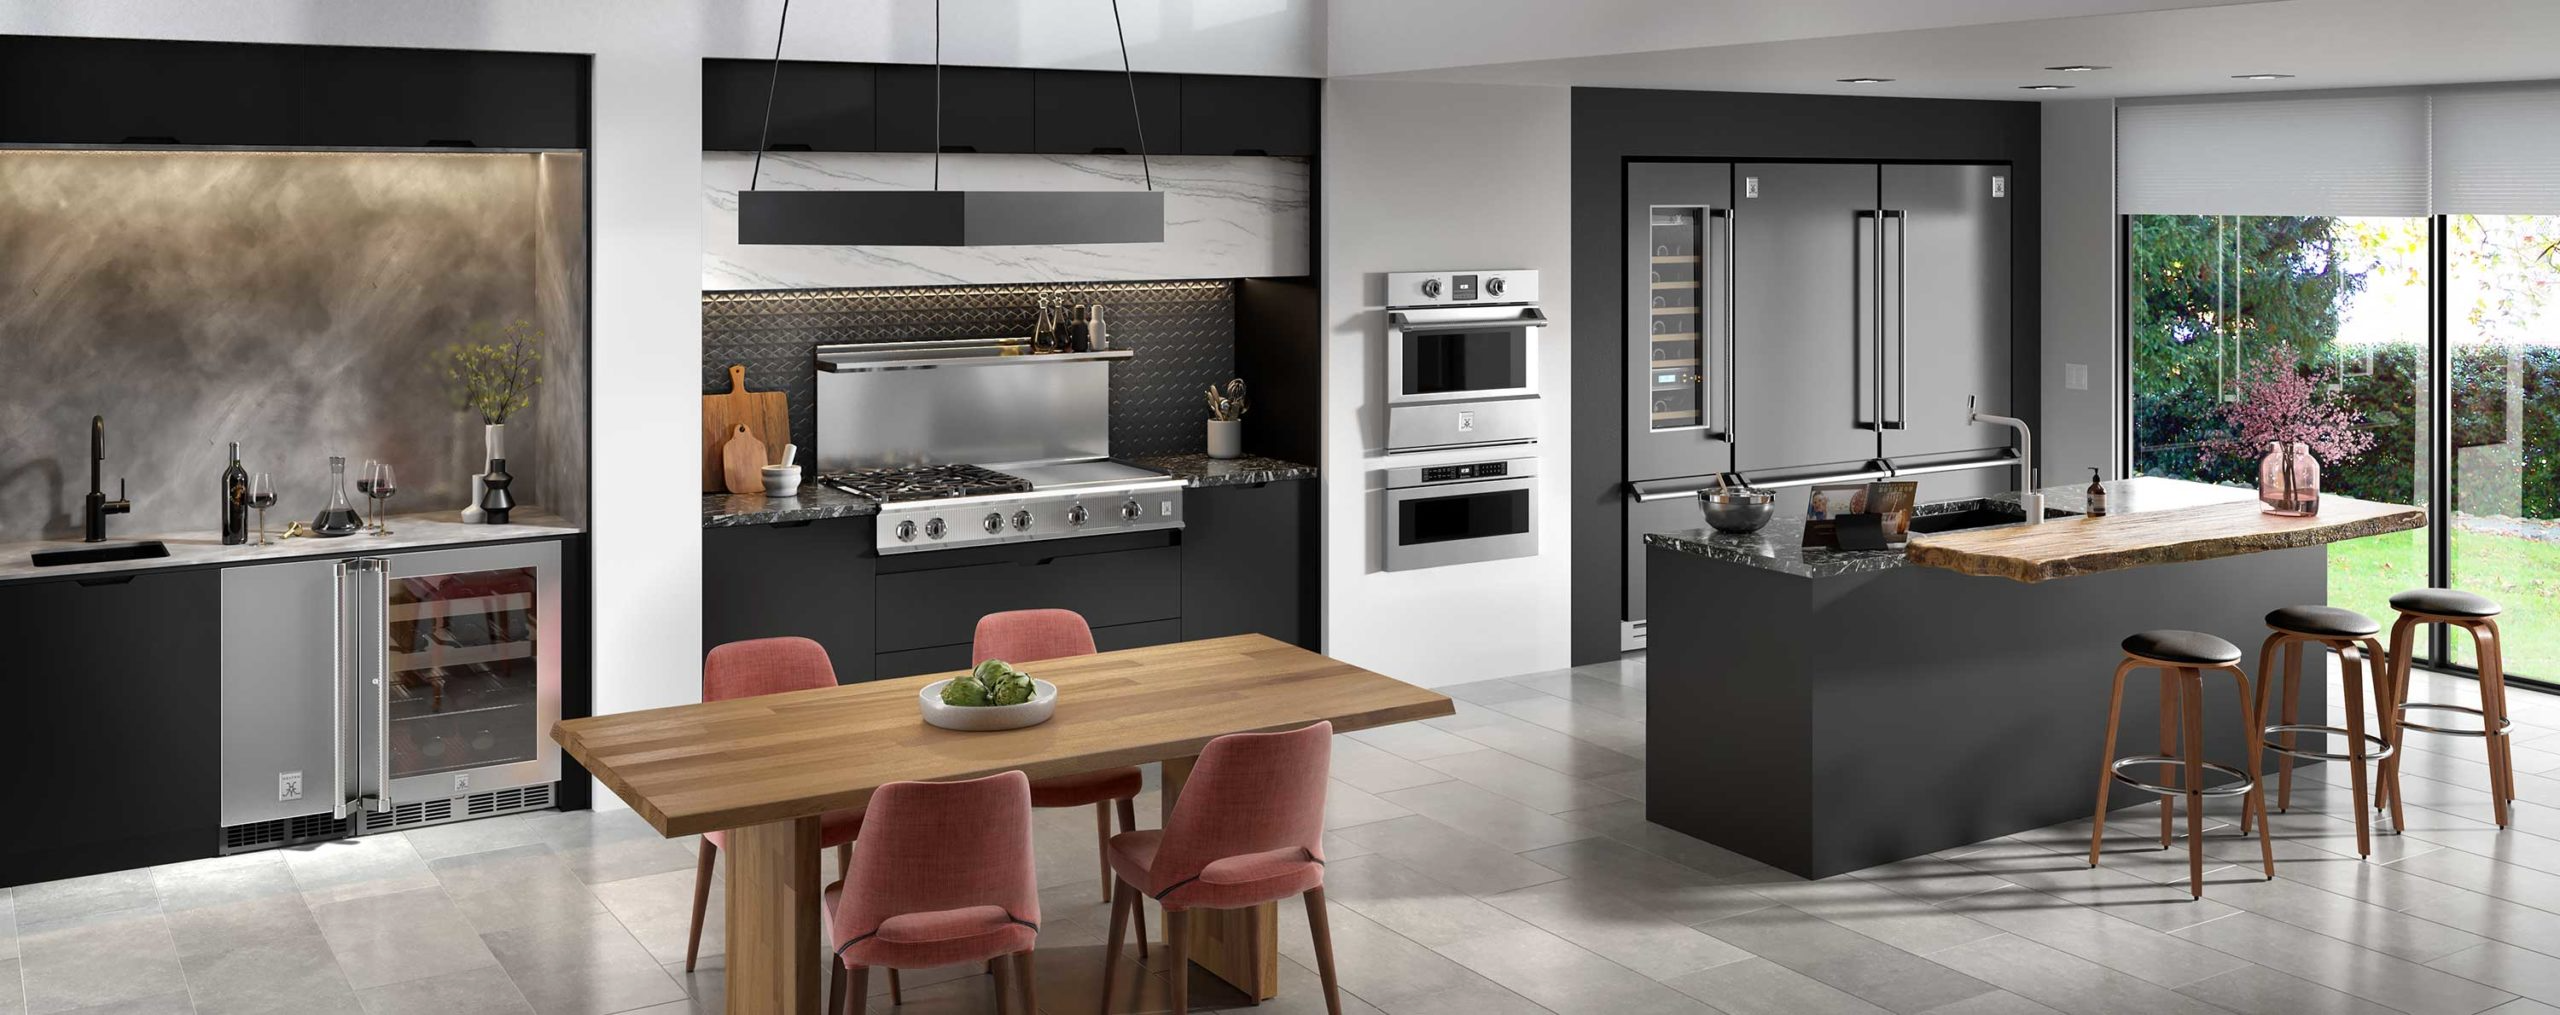 Hestan - A La Carte Savings Promotion - Buy One Get One, Buy Two Get Two